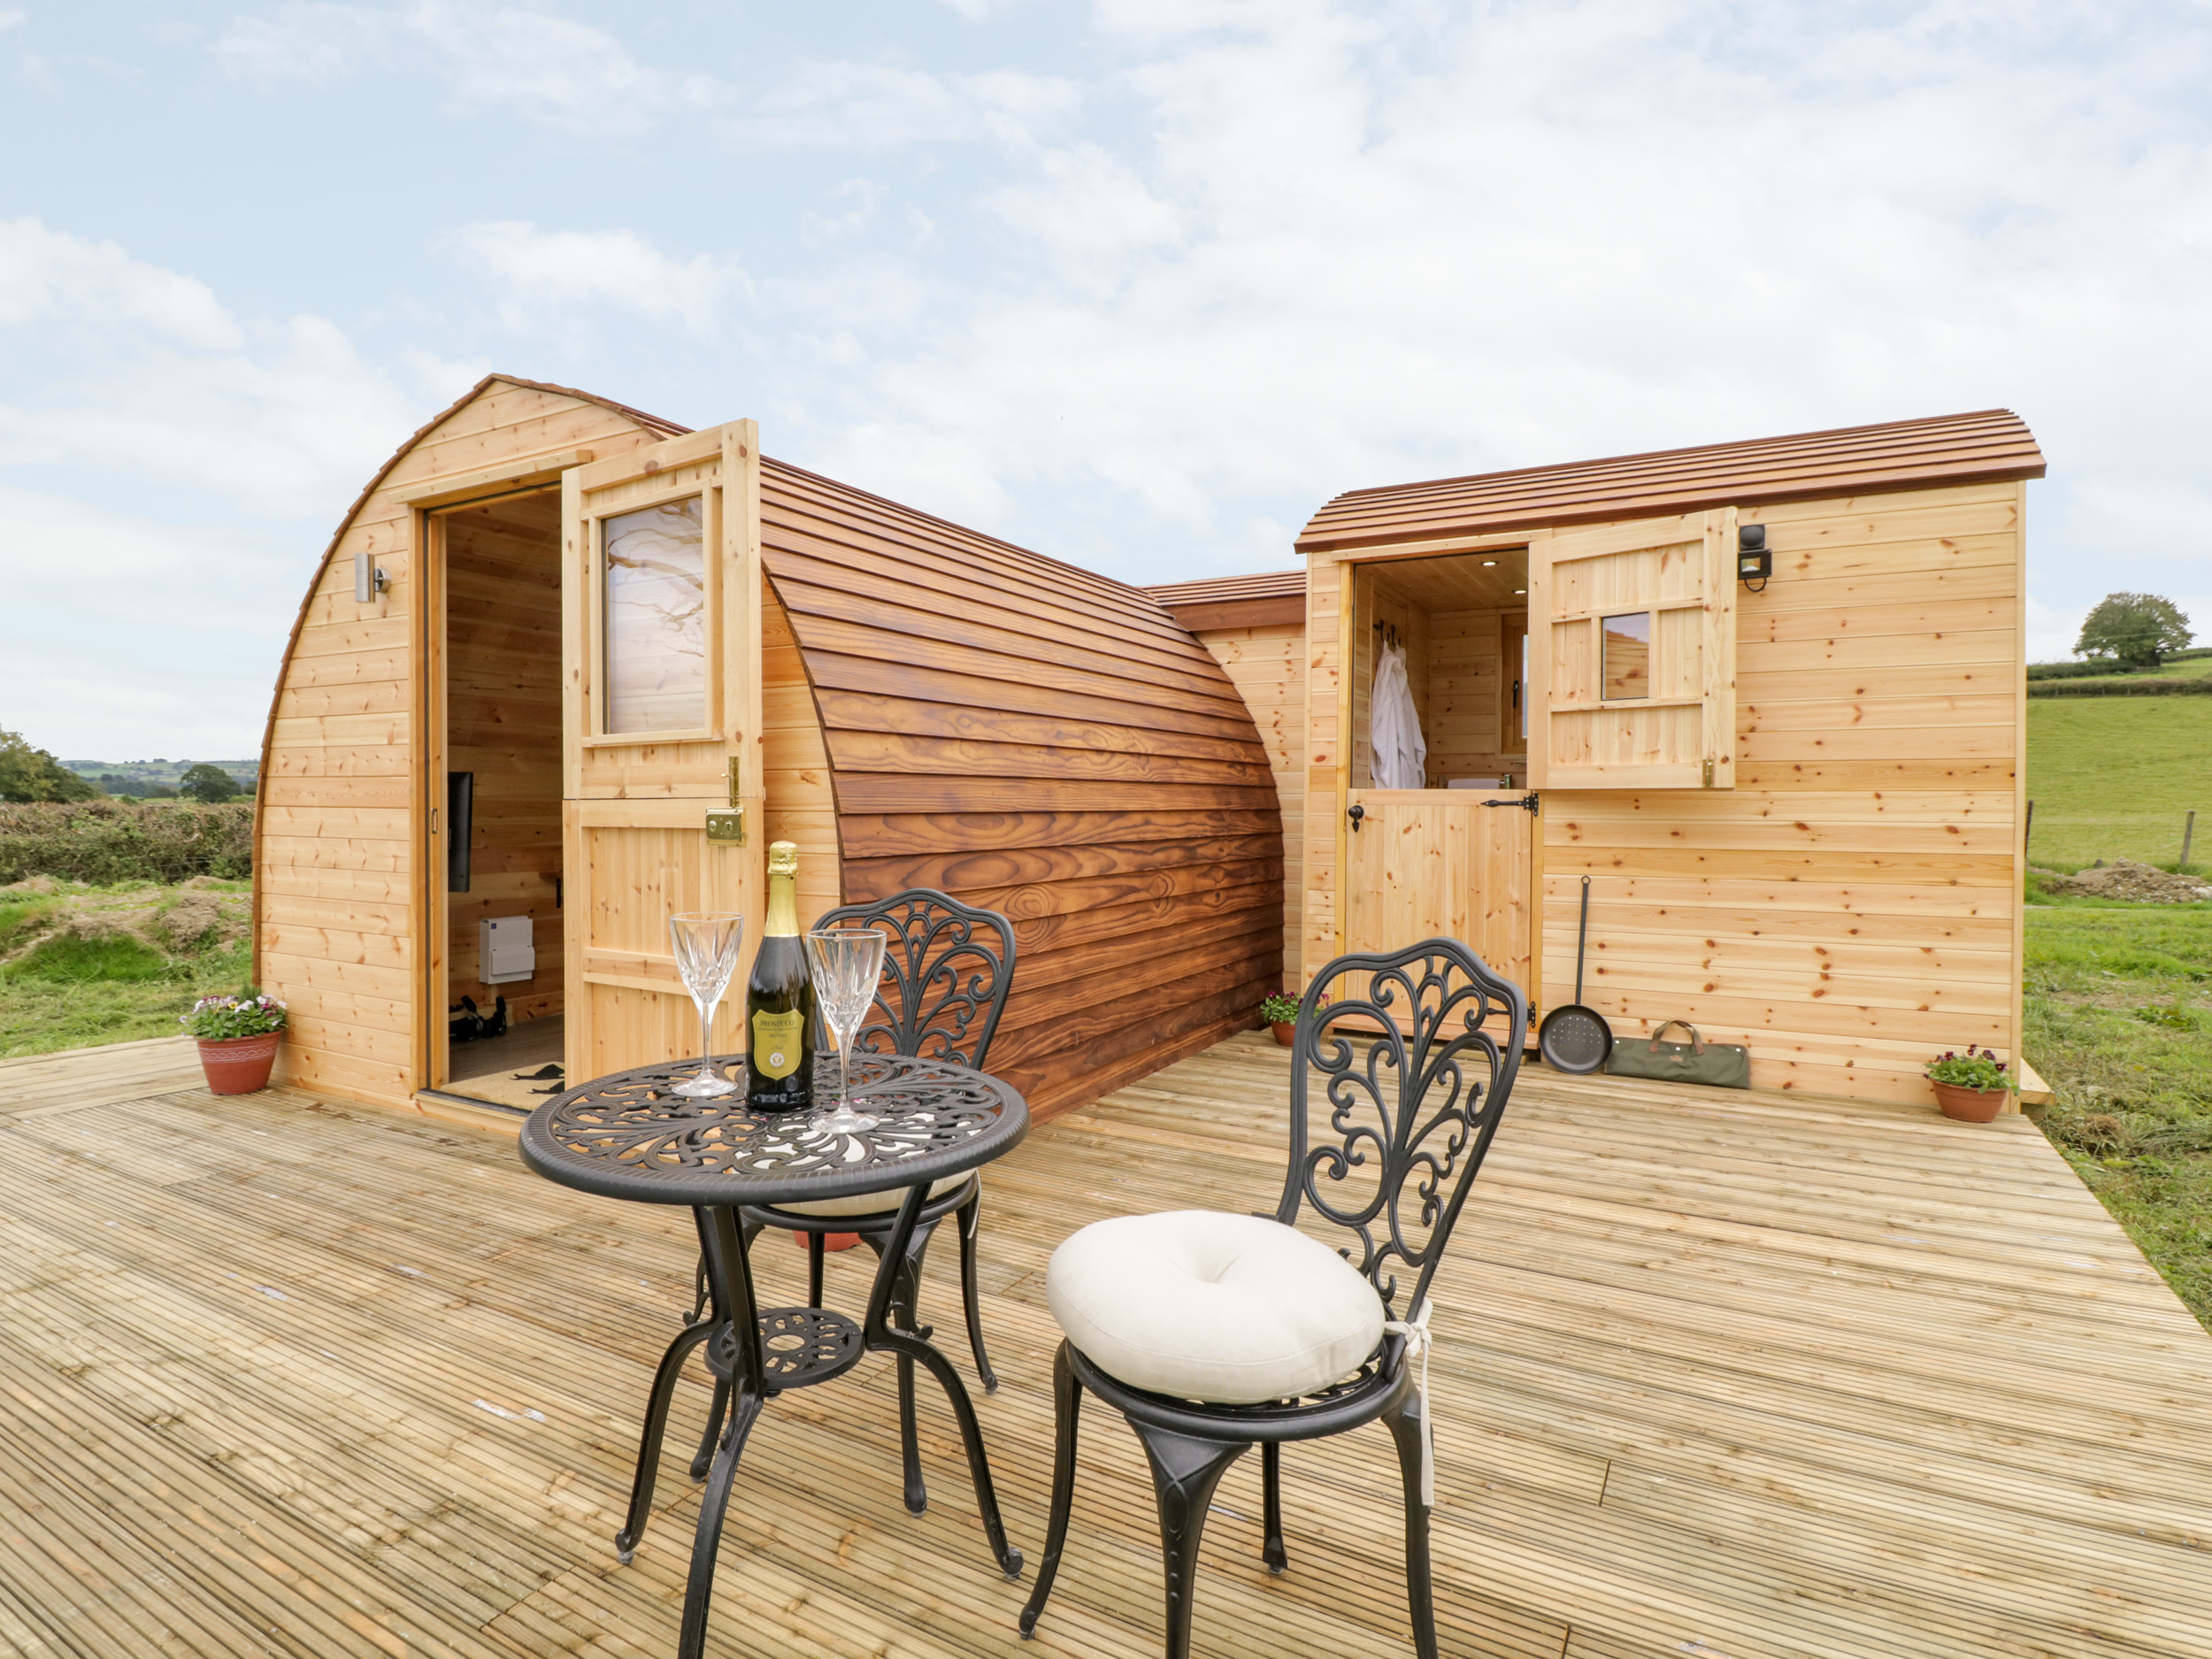 Embden Pod at Banwy Glamping, Mid Wales